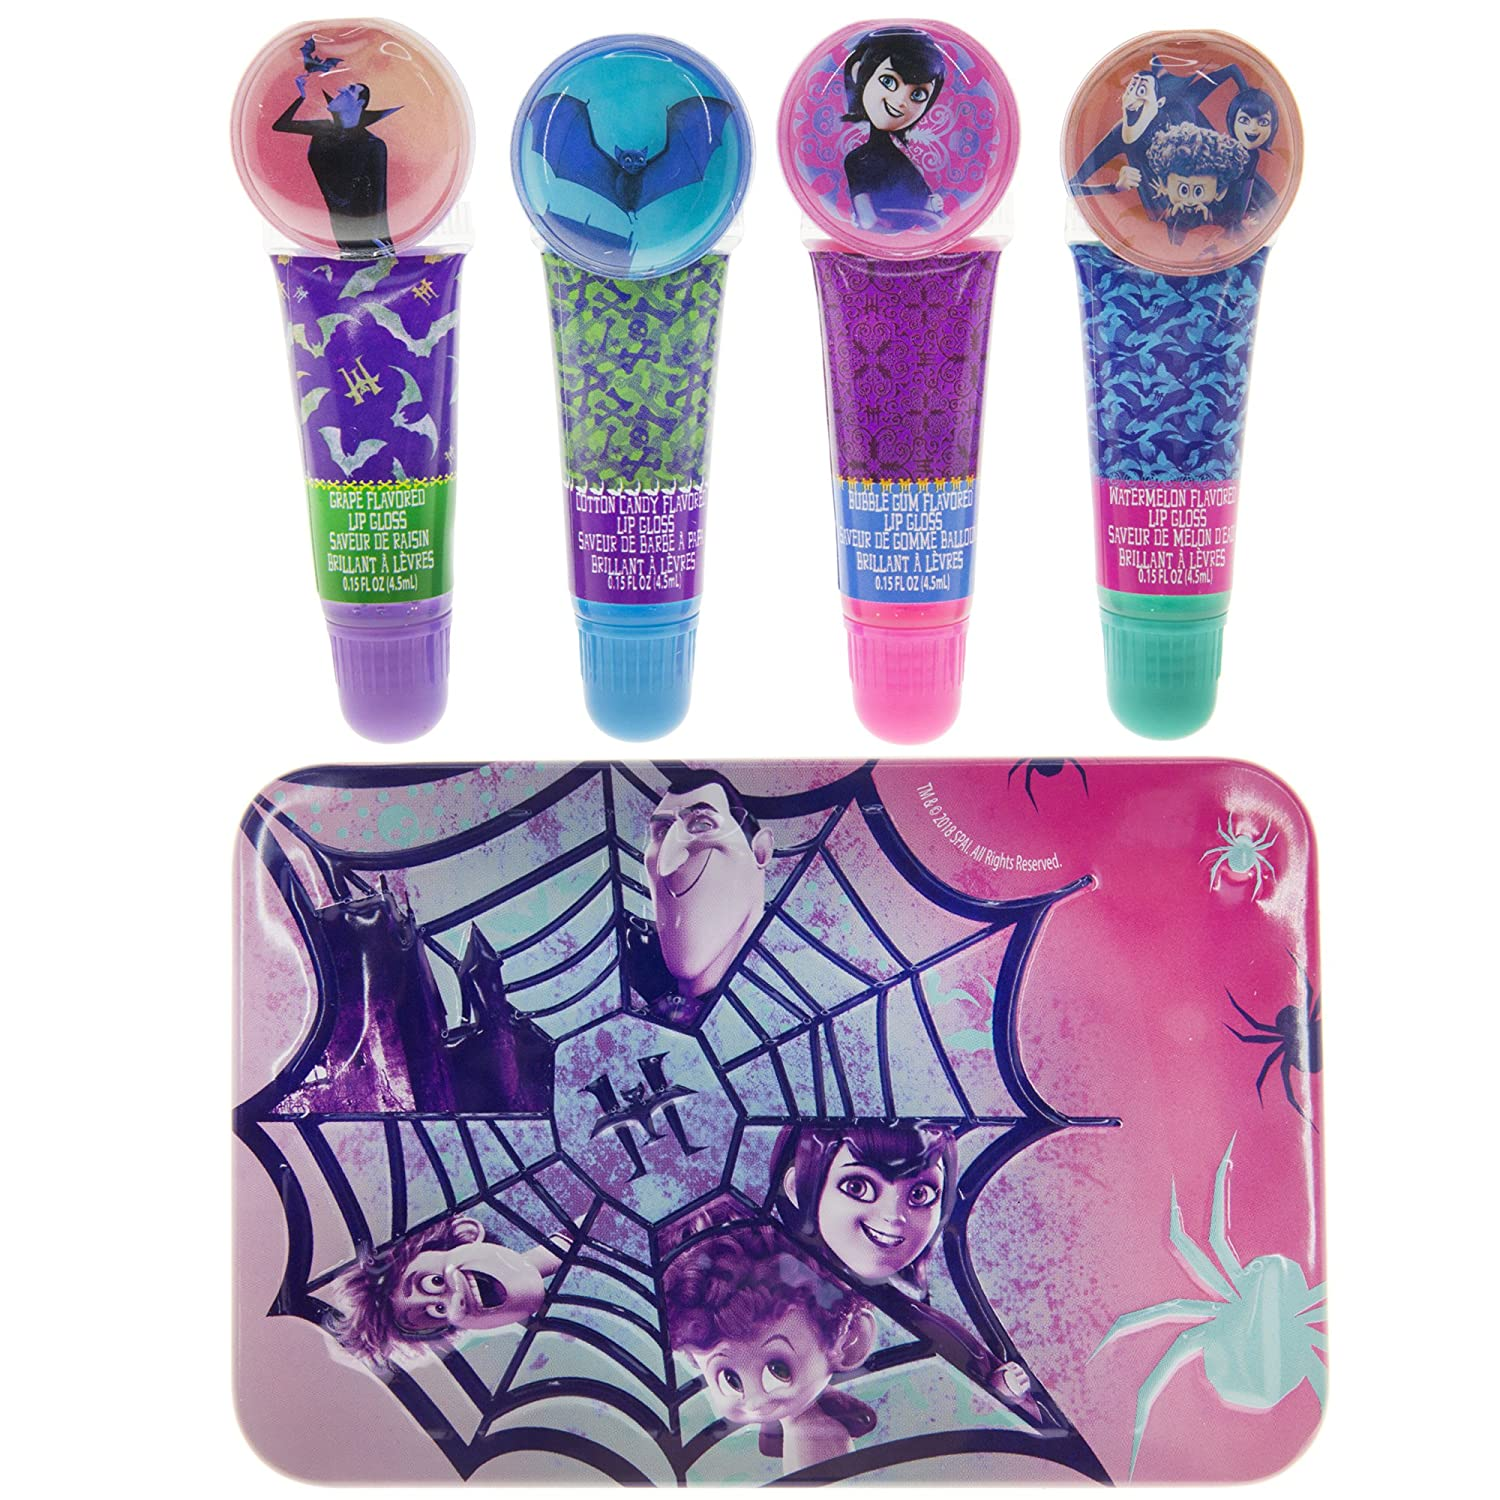 Townley Girl Hotel Transylvania Sparkly Lip Gloss Set For Girls, 4 pack with Decorative Tin TownleyGirl